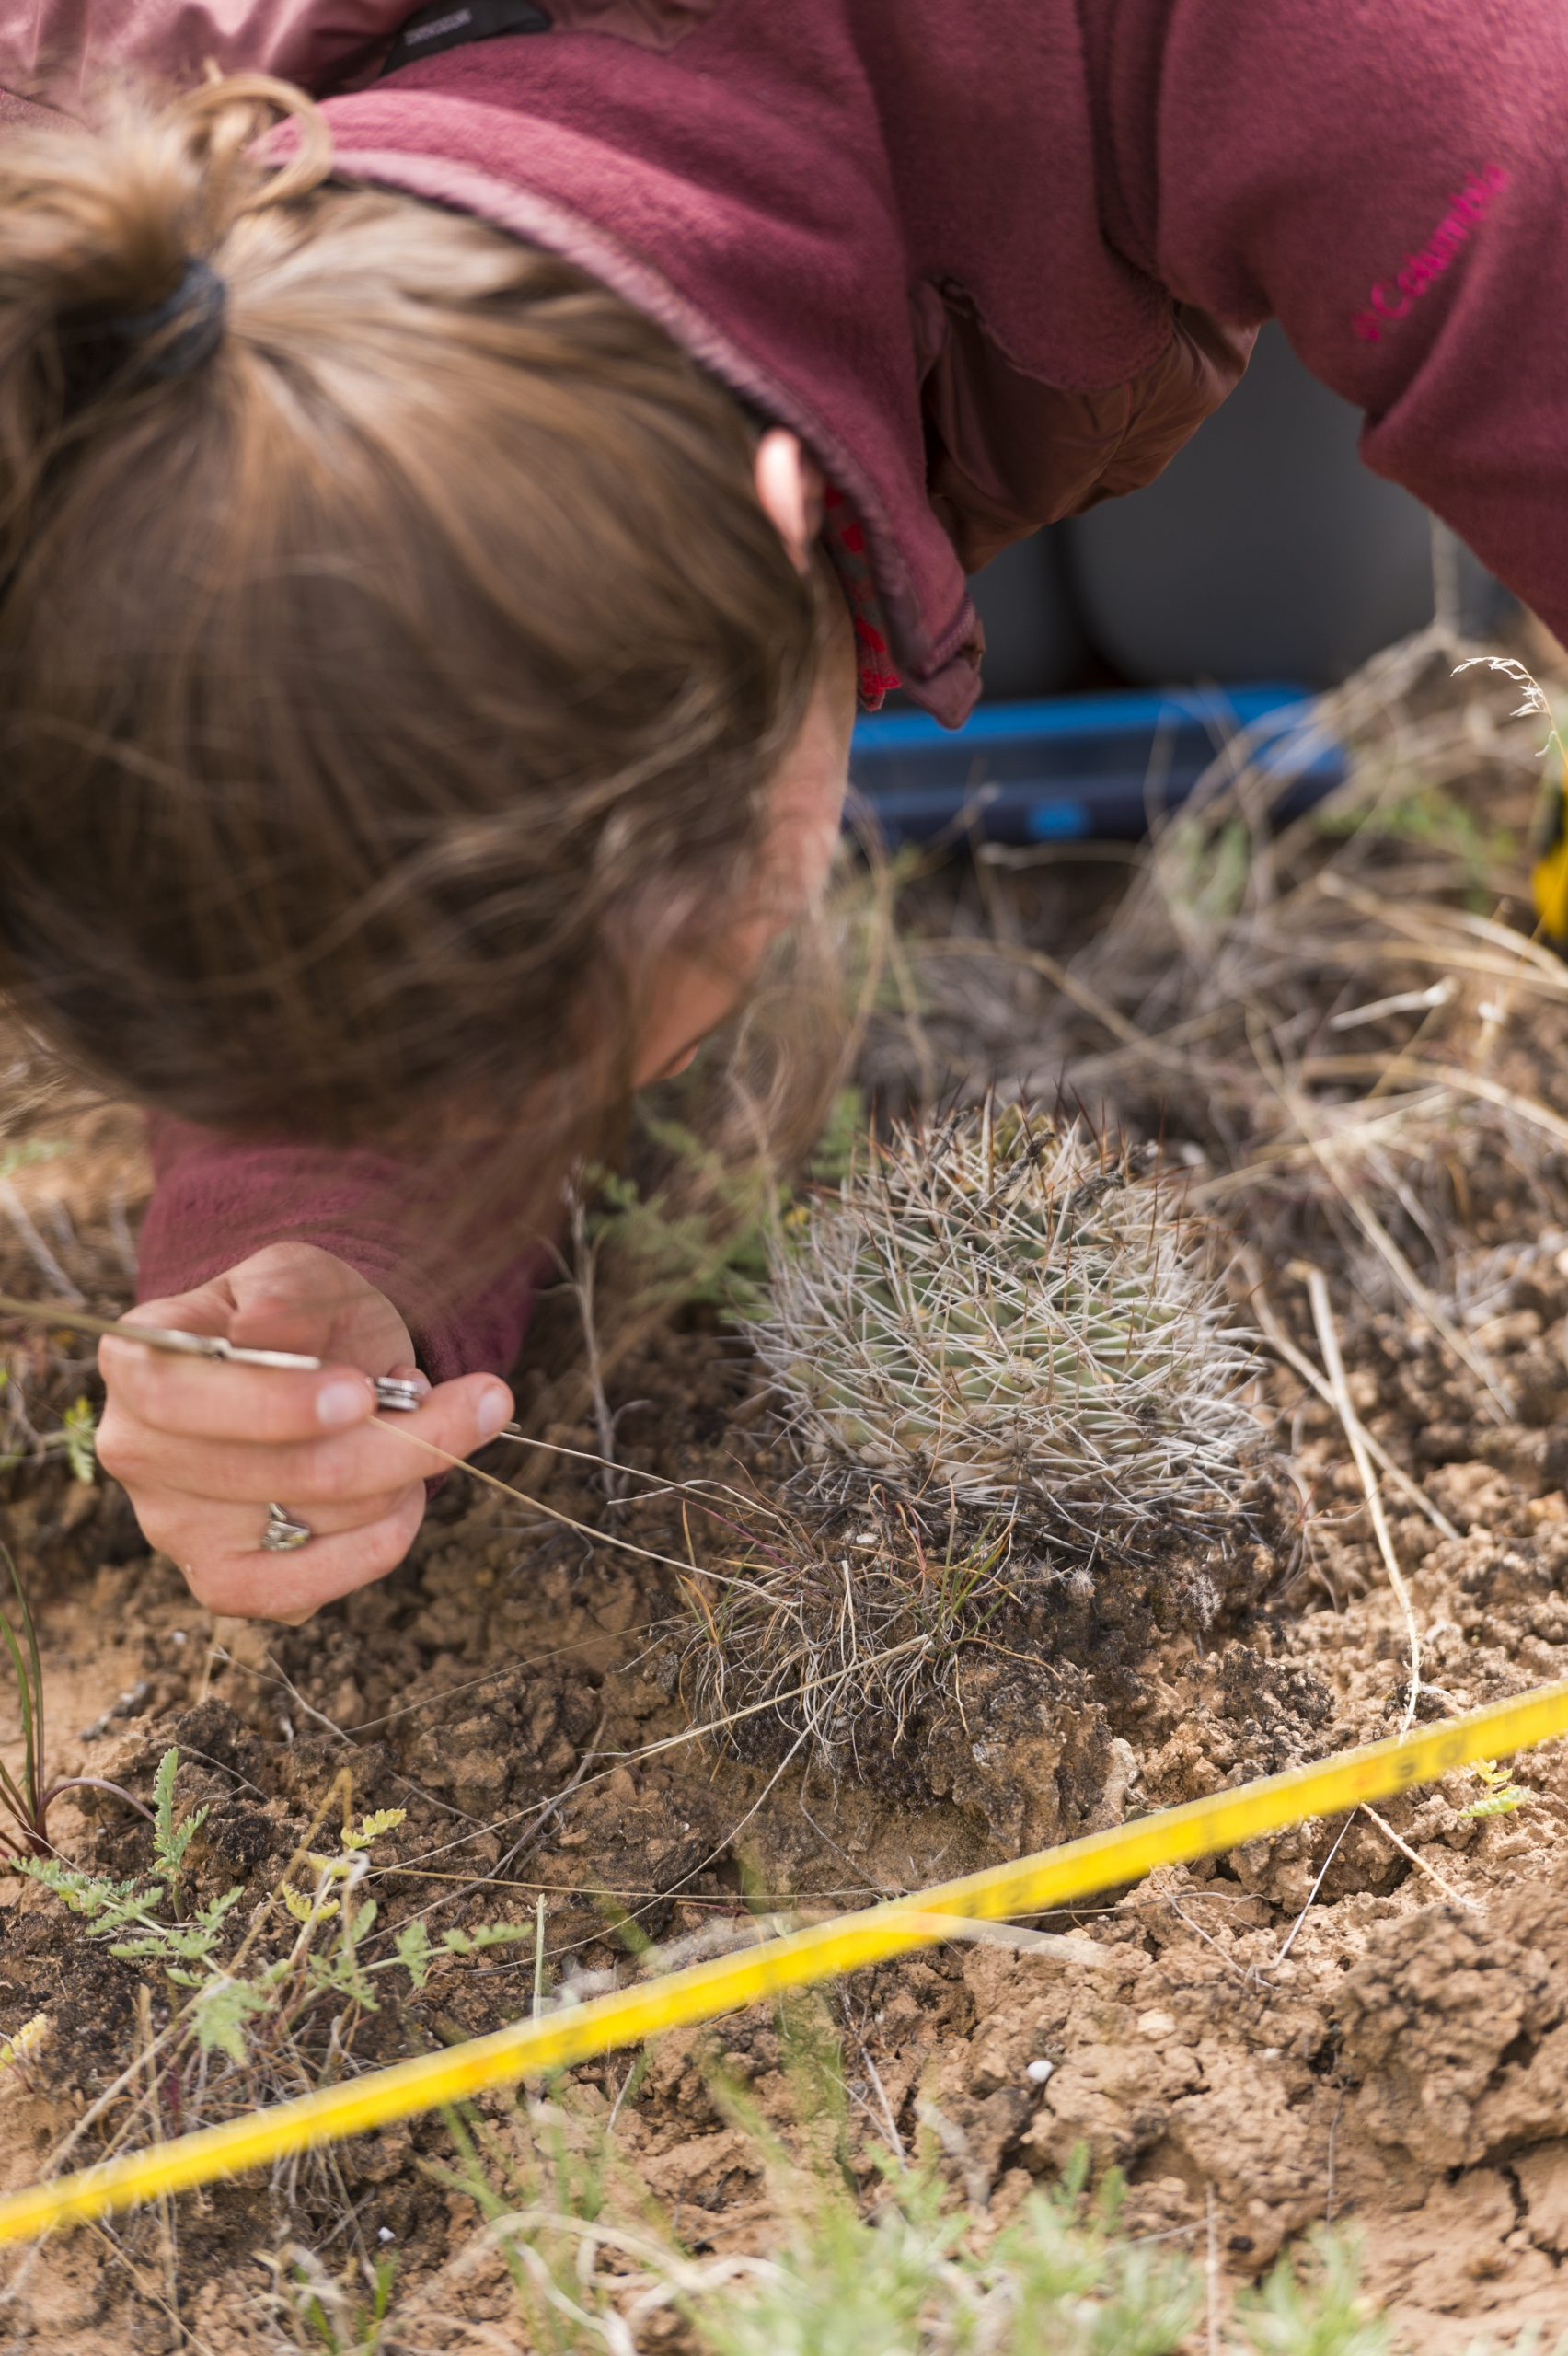 DBG research team in the field near De Beque, Colorado for Sclerocactus glaucus